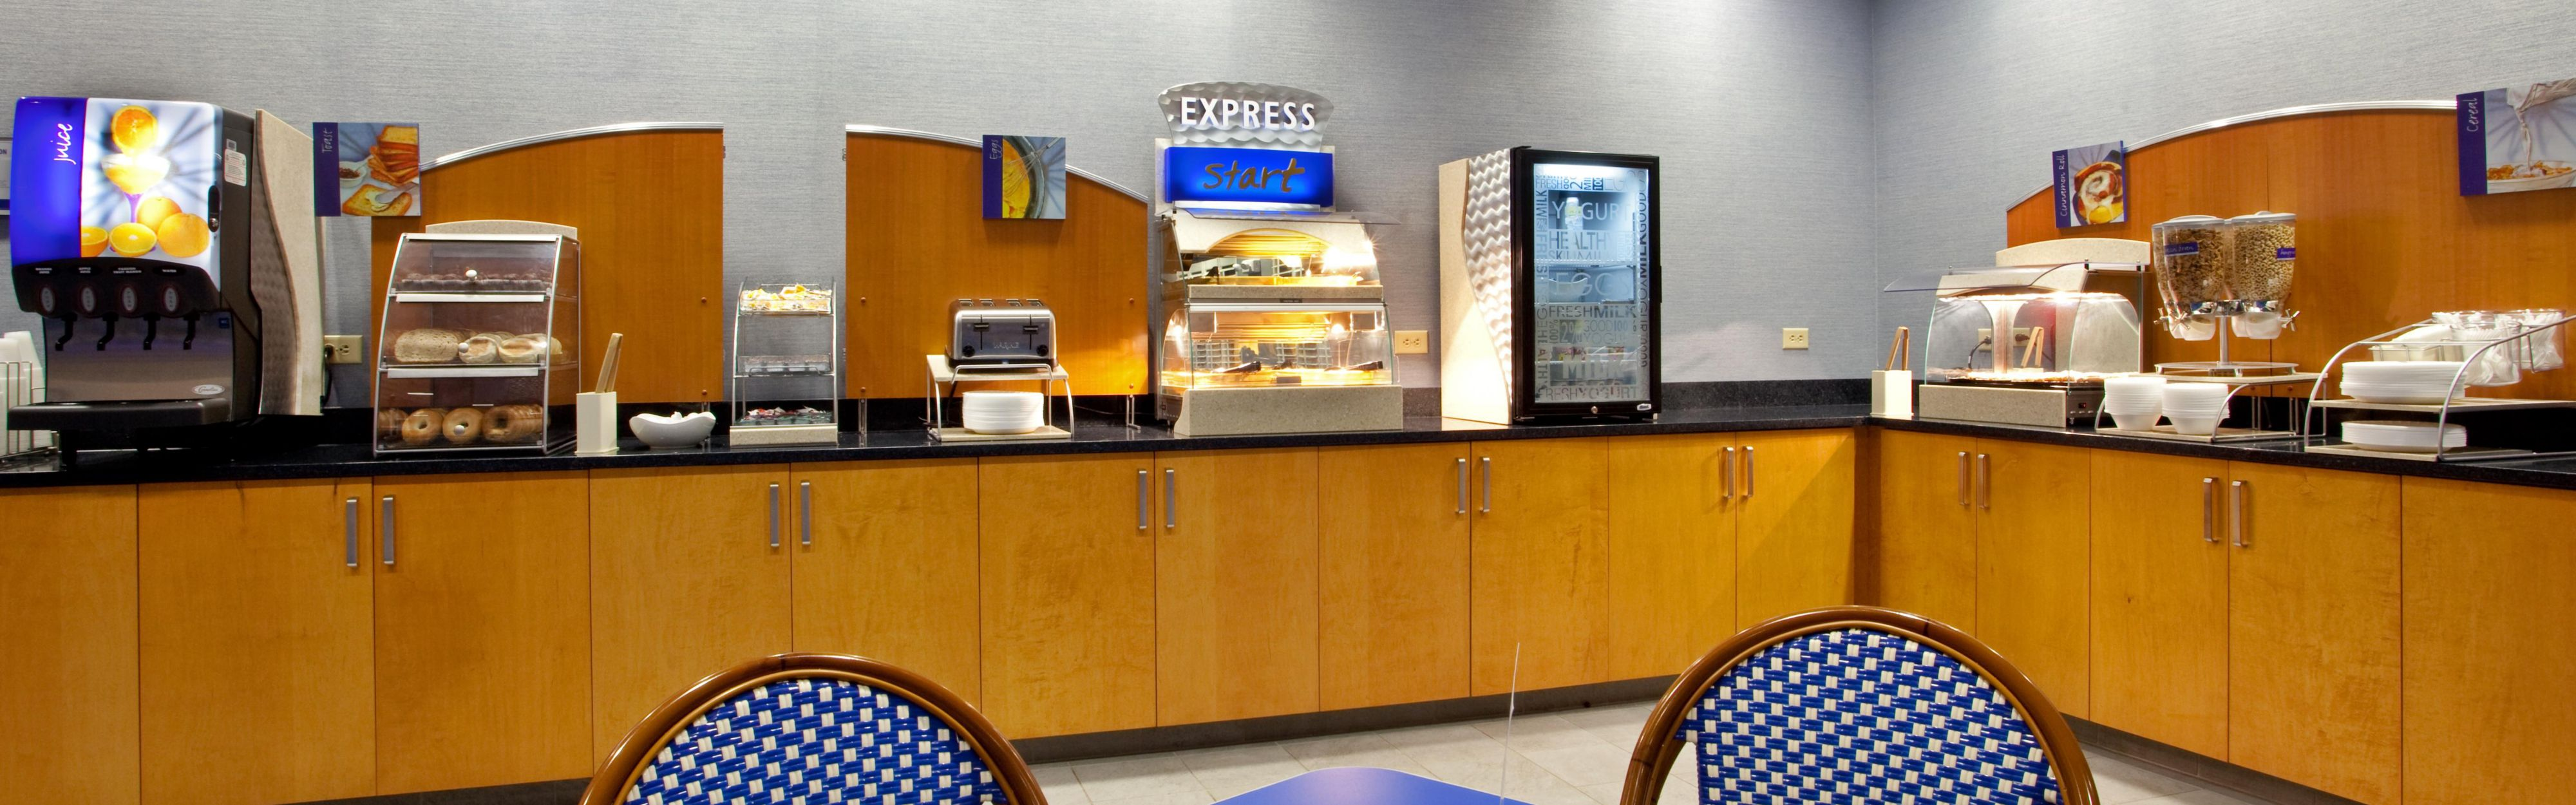 Holiday Inn Express & Suites Norfolk Airport image 3